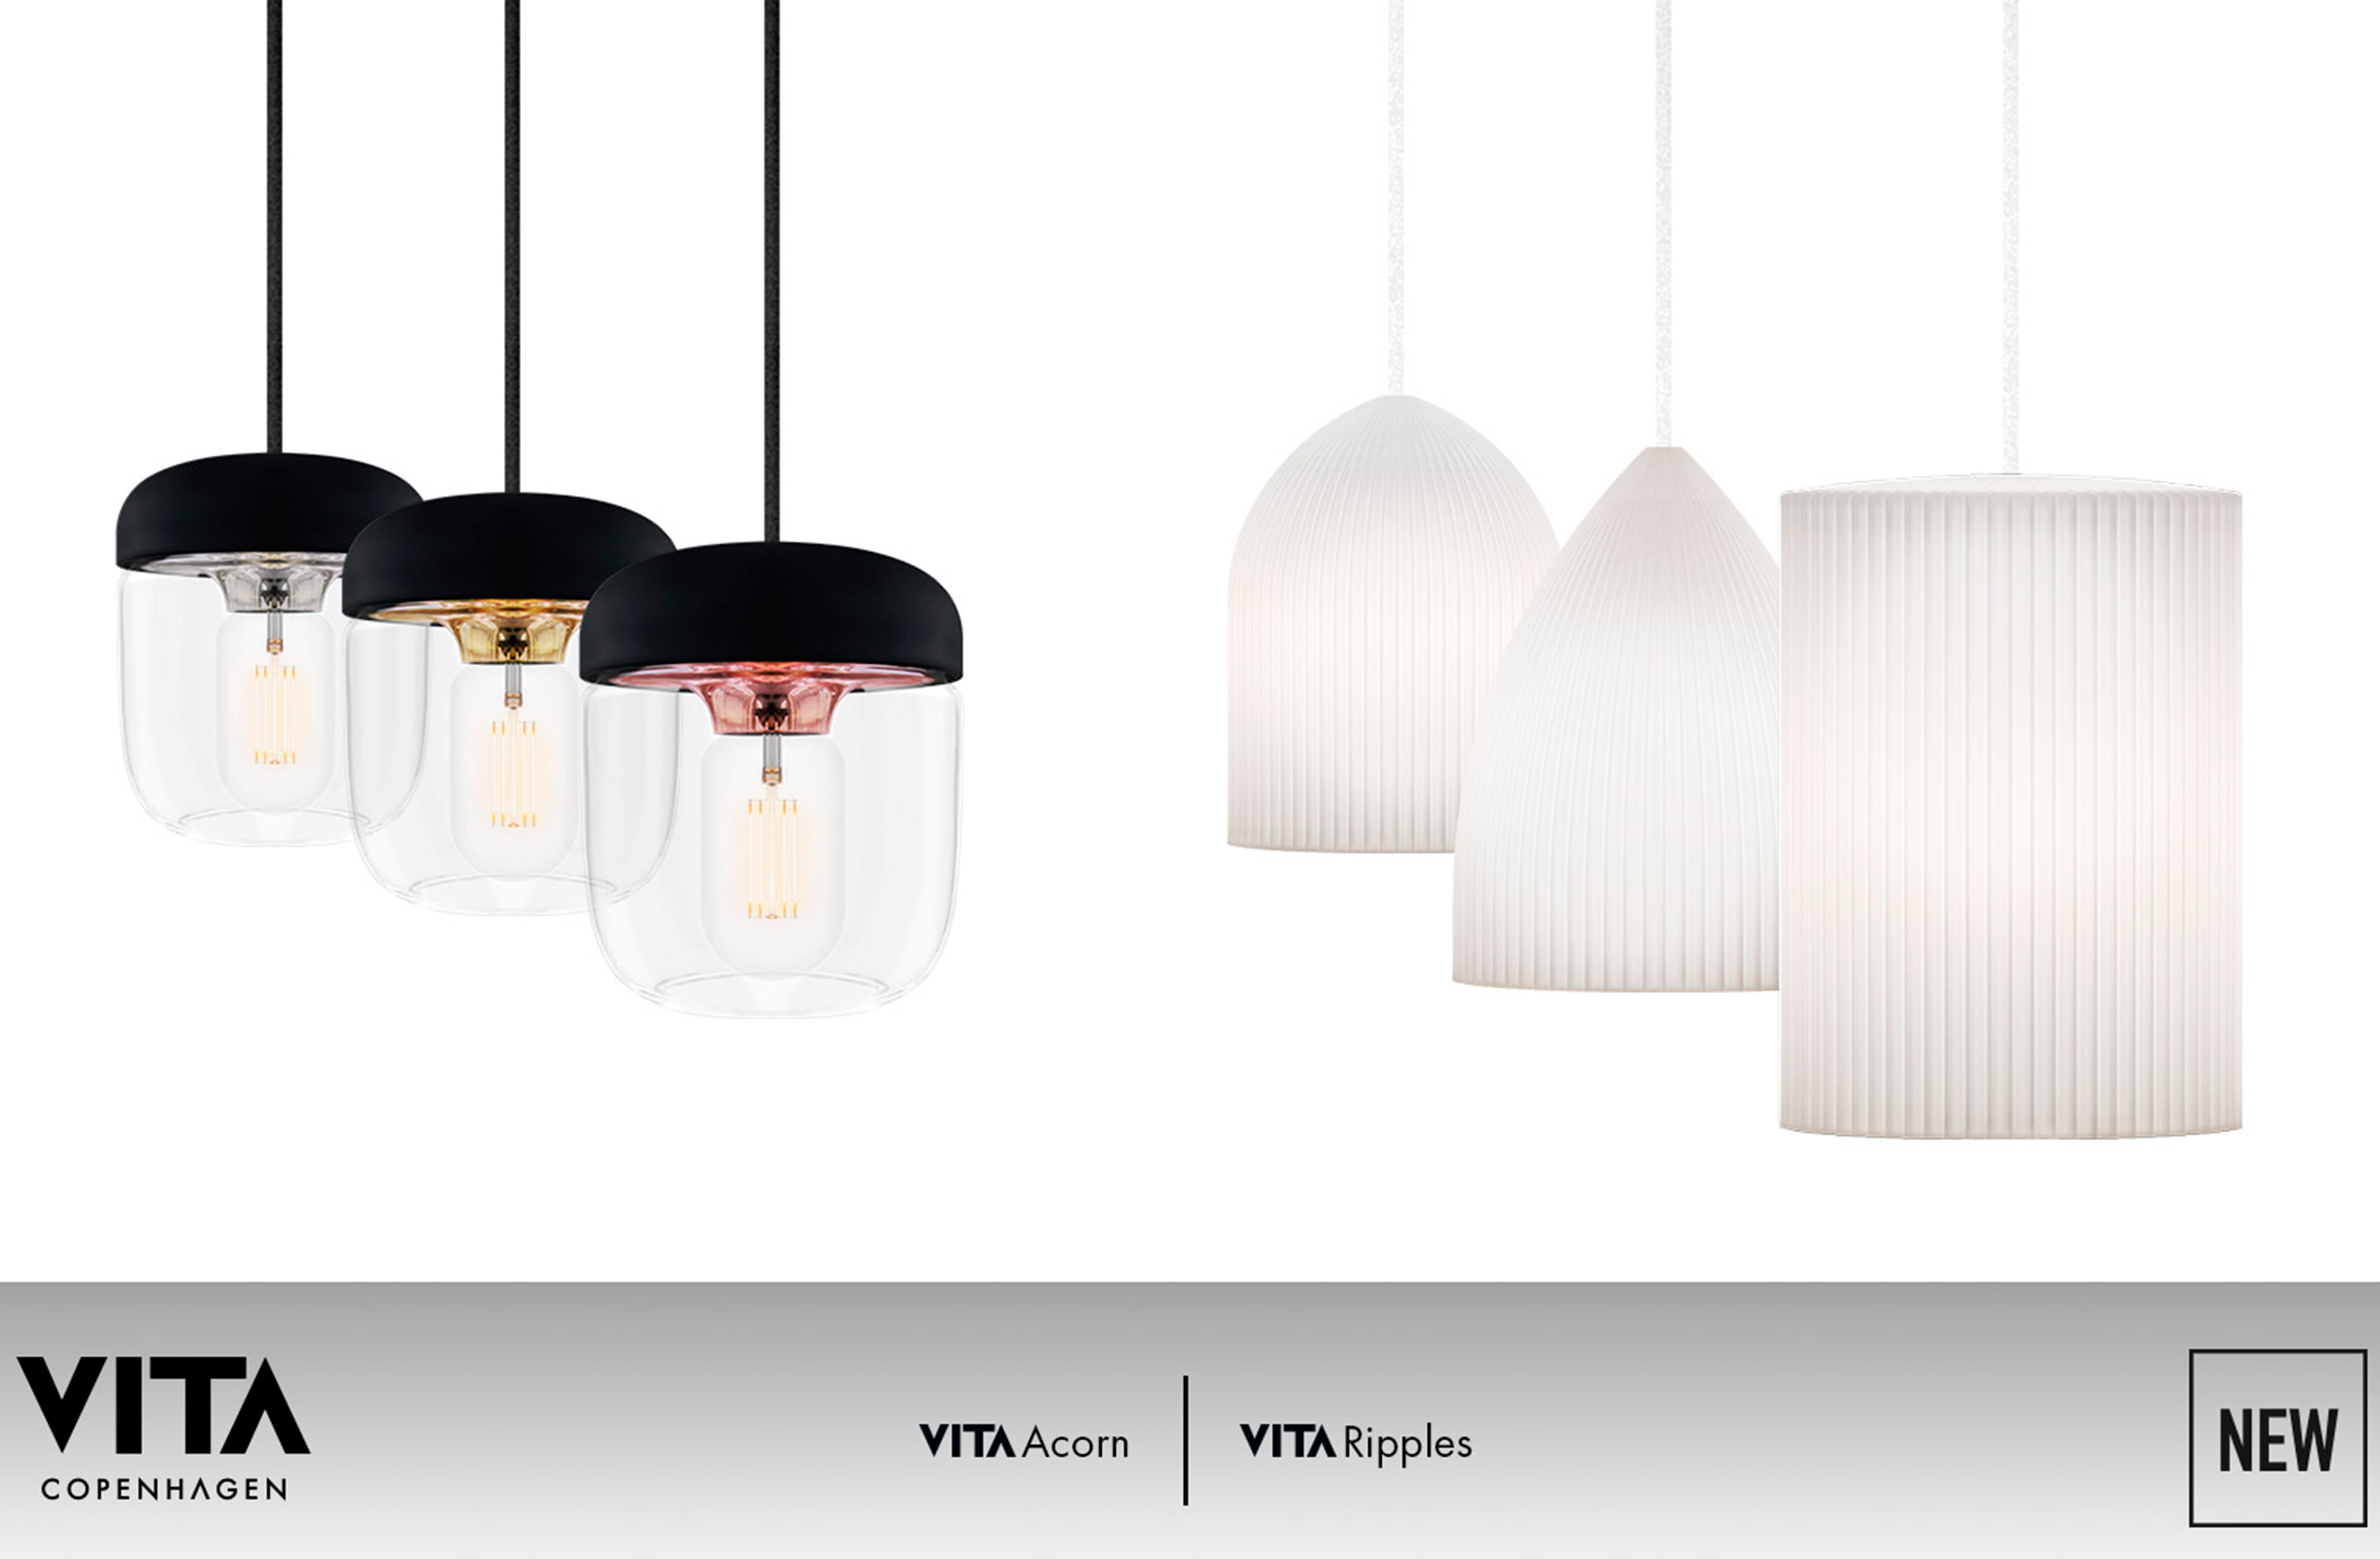 vita copenhagen design lighting maison et objet Highlights Maison et Objet: VITA Novelties vita copenhagen design lighting